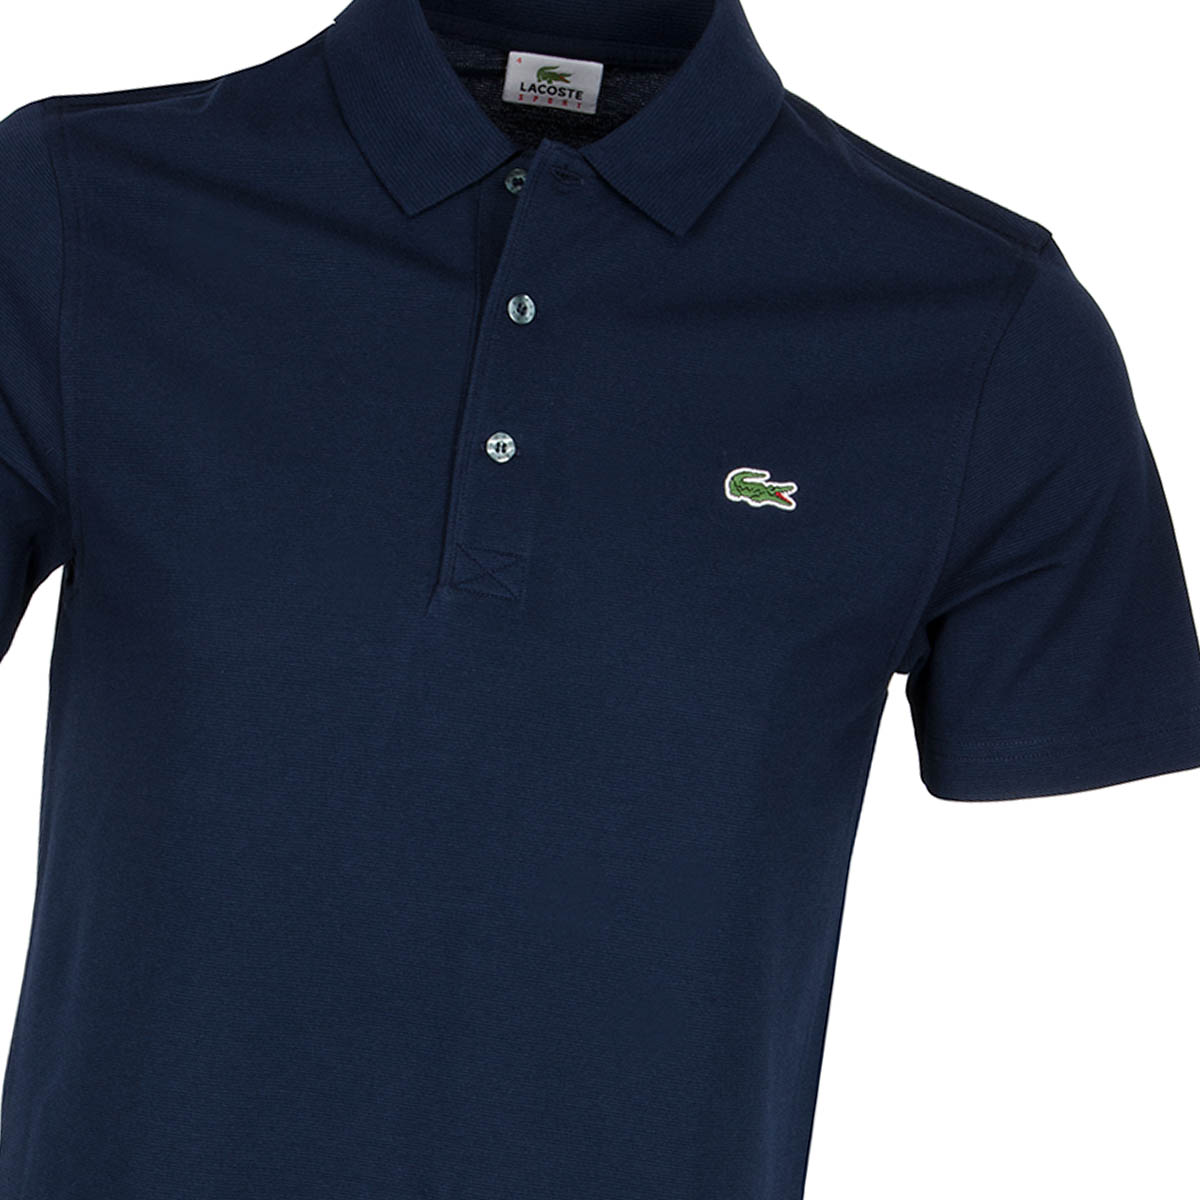 Lacoste sport polo shirt marine navy scottsdale golf for What is a sport shirt